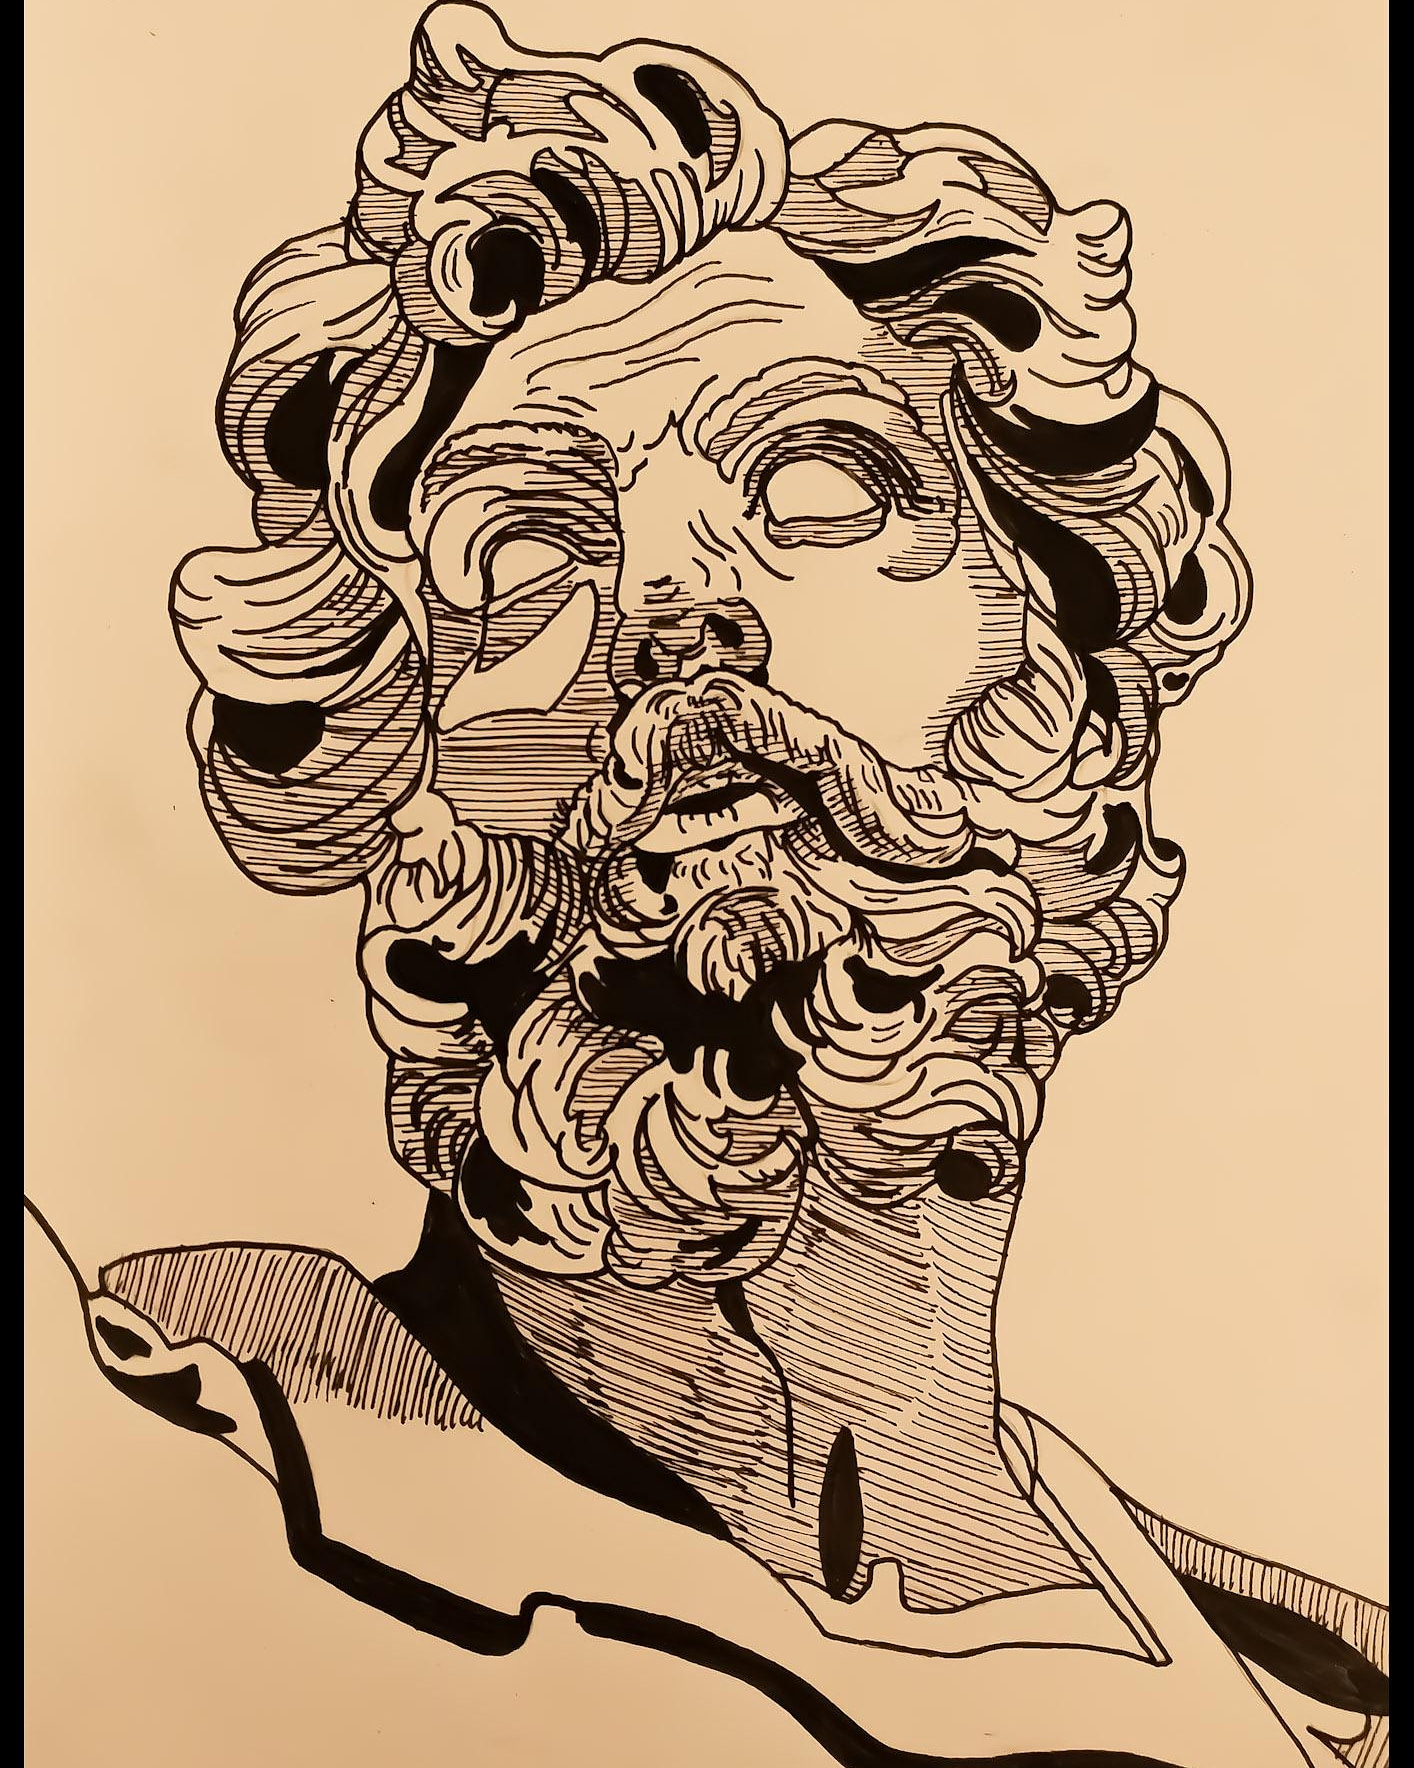 Pen and Ink bust drawing of Greek sculpture, depicting a male god.